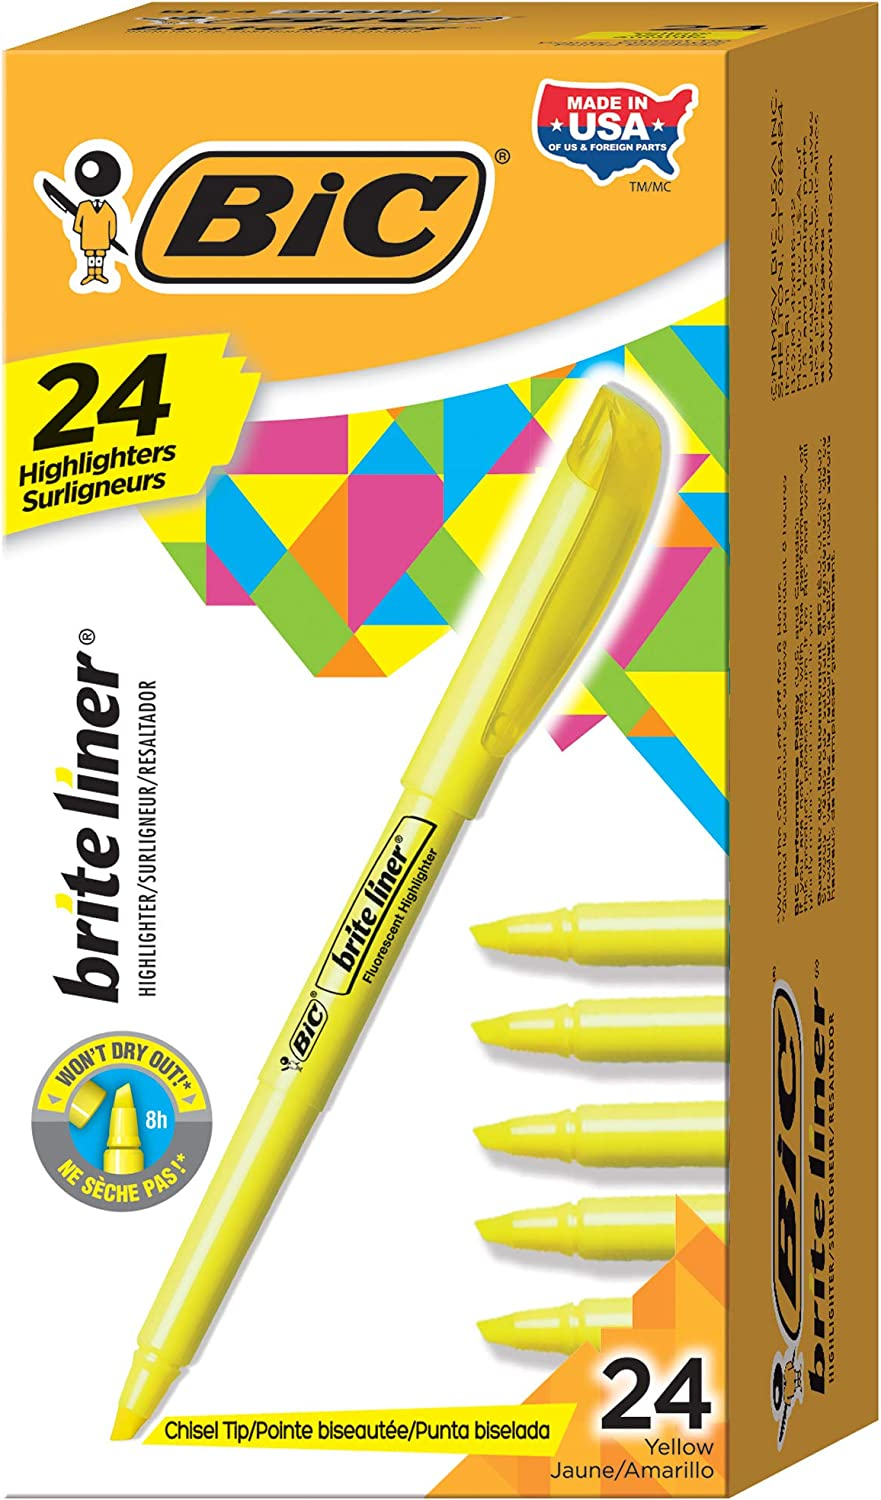 BIC Brite Liner Highlighter, Chisel Tip, Yellow, 24-Count